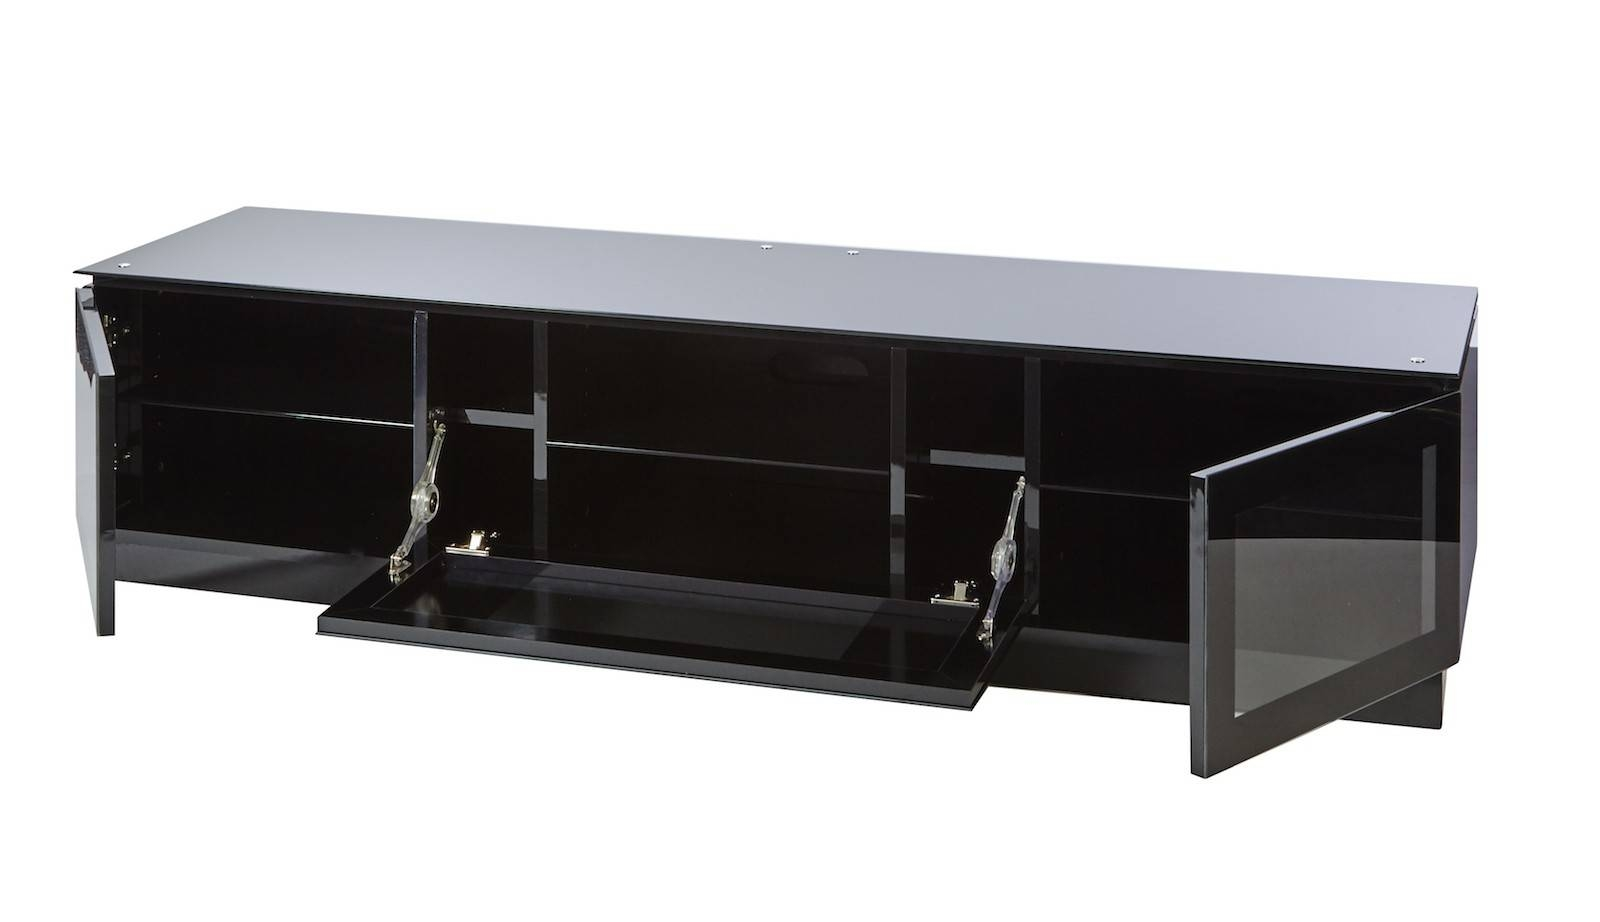 Black Gloss Tv Unit Up To 80 Inch Flat Screen Tv | Mmt-D1800 pertaining to Black Tv Cabinets With Doors (Image 6 of 15)